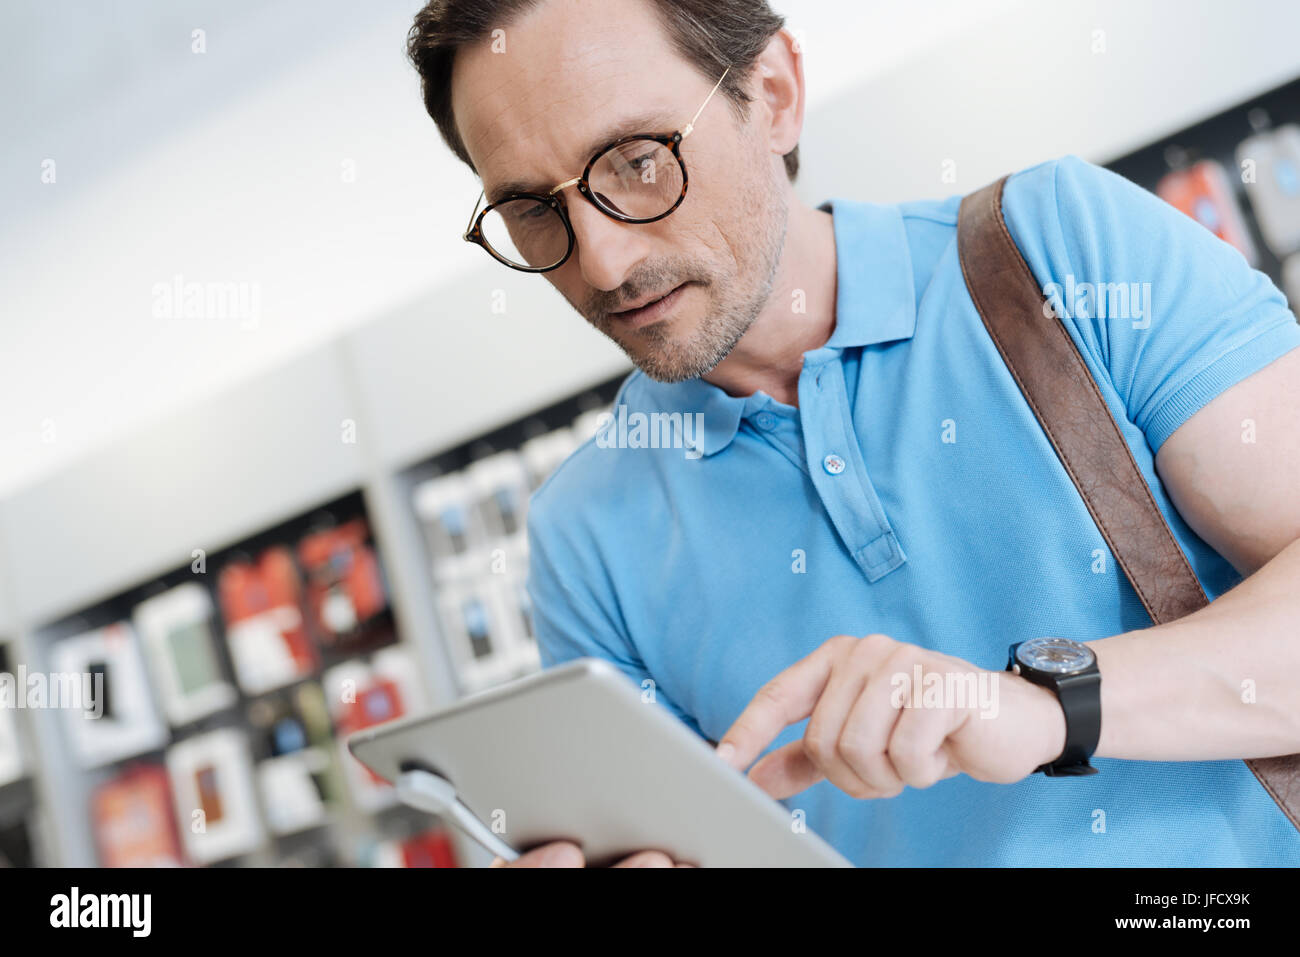 This could be a perfect gift. Male shopper focusing on a tablet and trying its technical capabilities while shopping - Stock Image